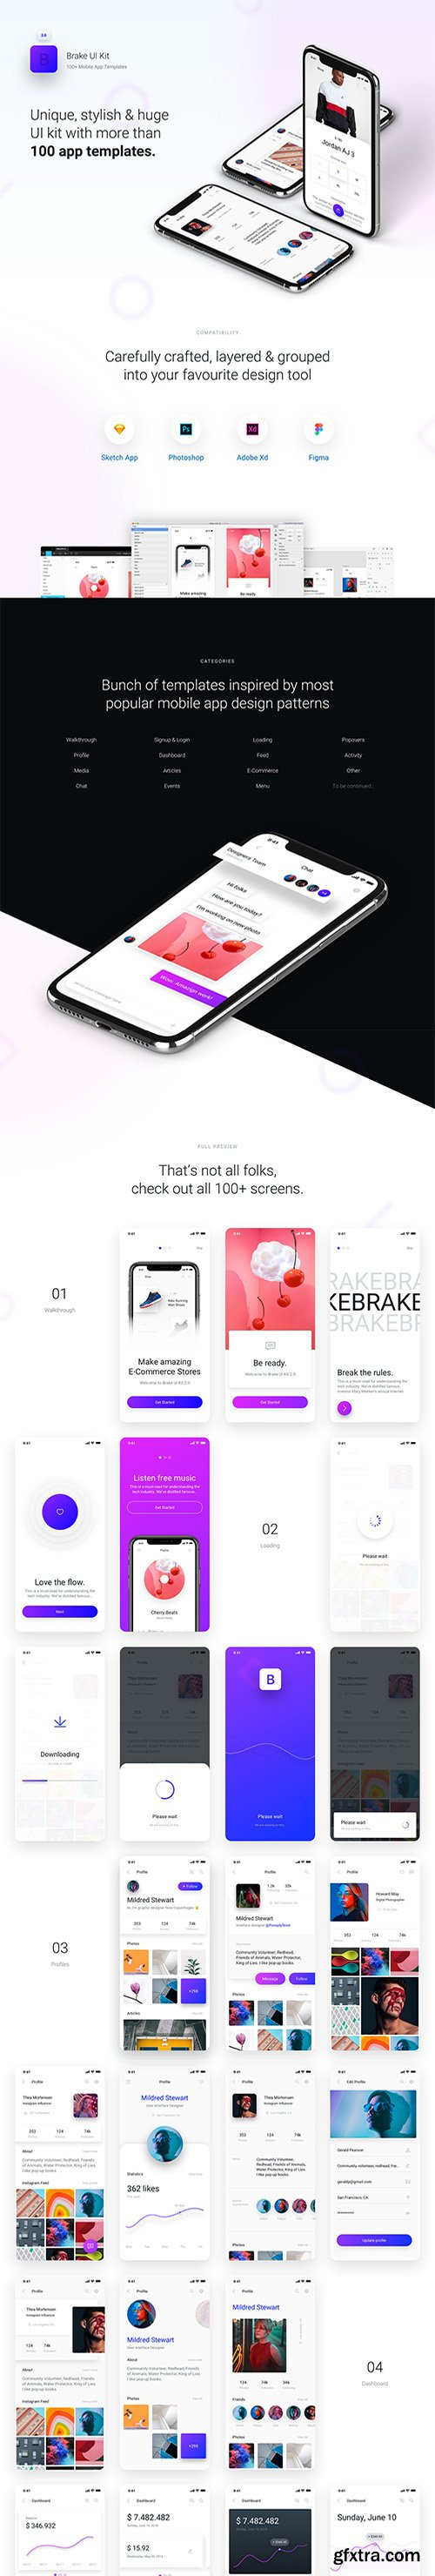 Brake UI Kit 2.0 (Update)